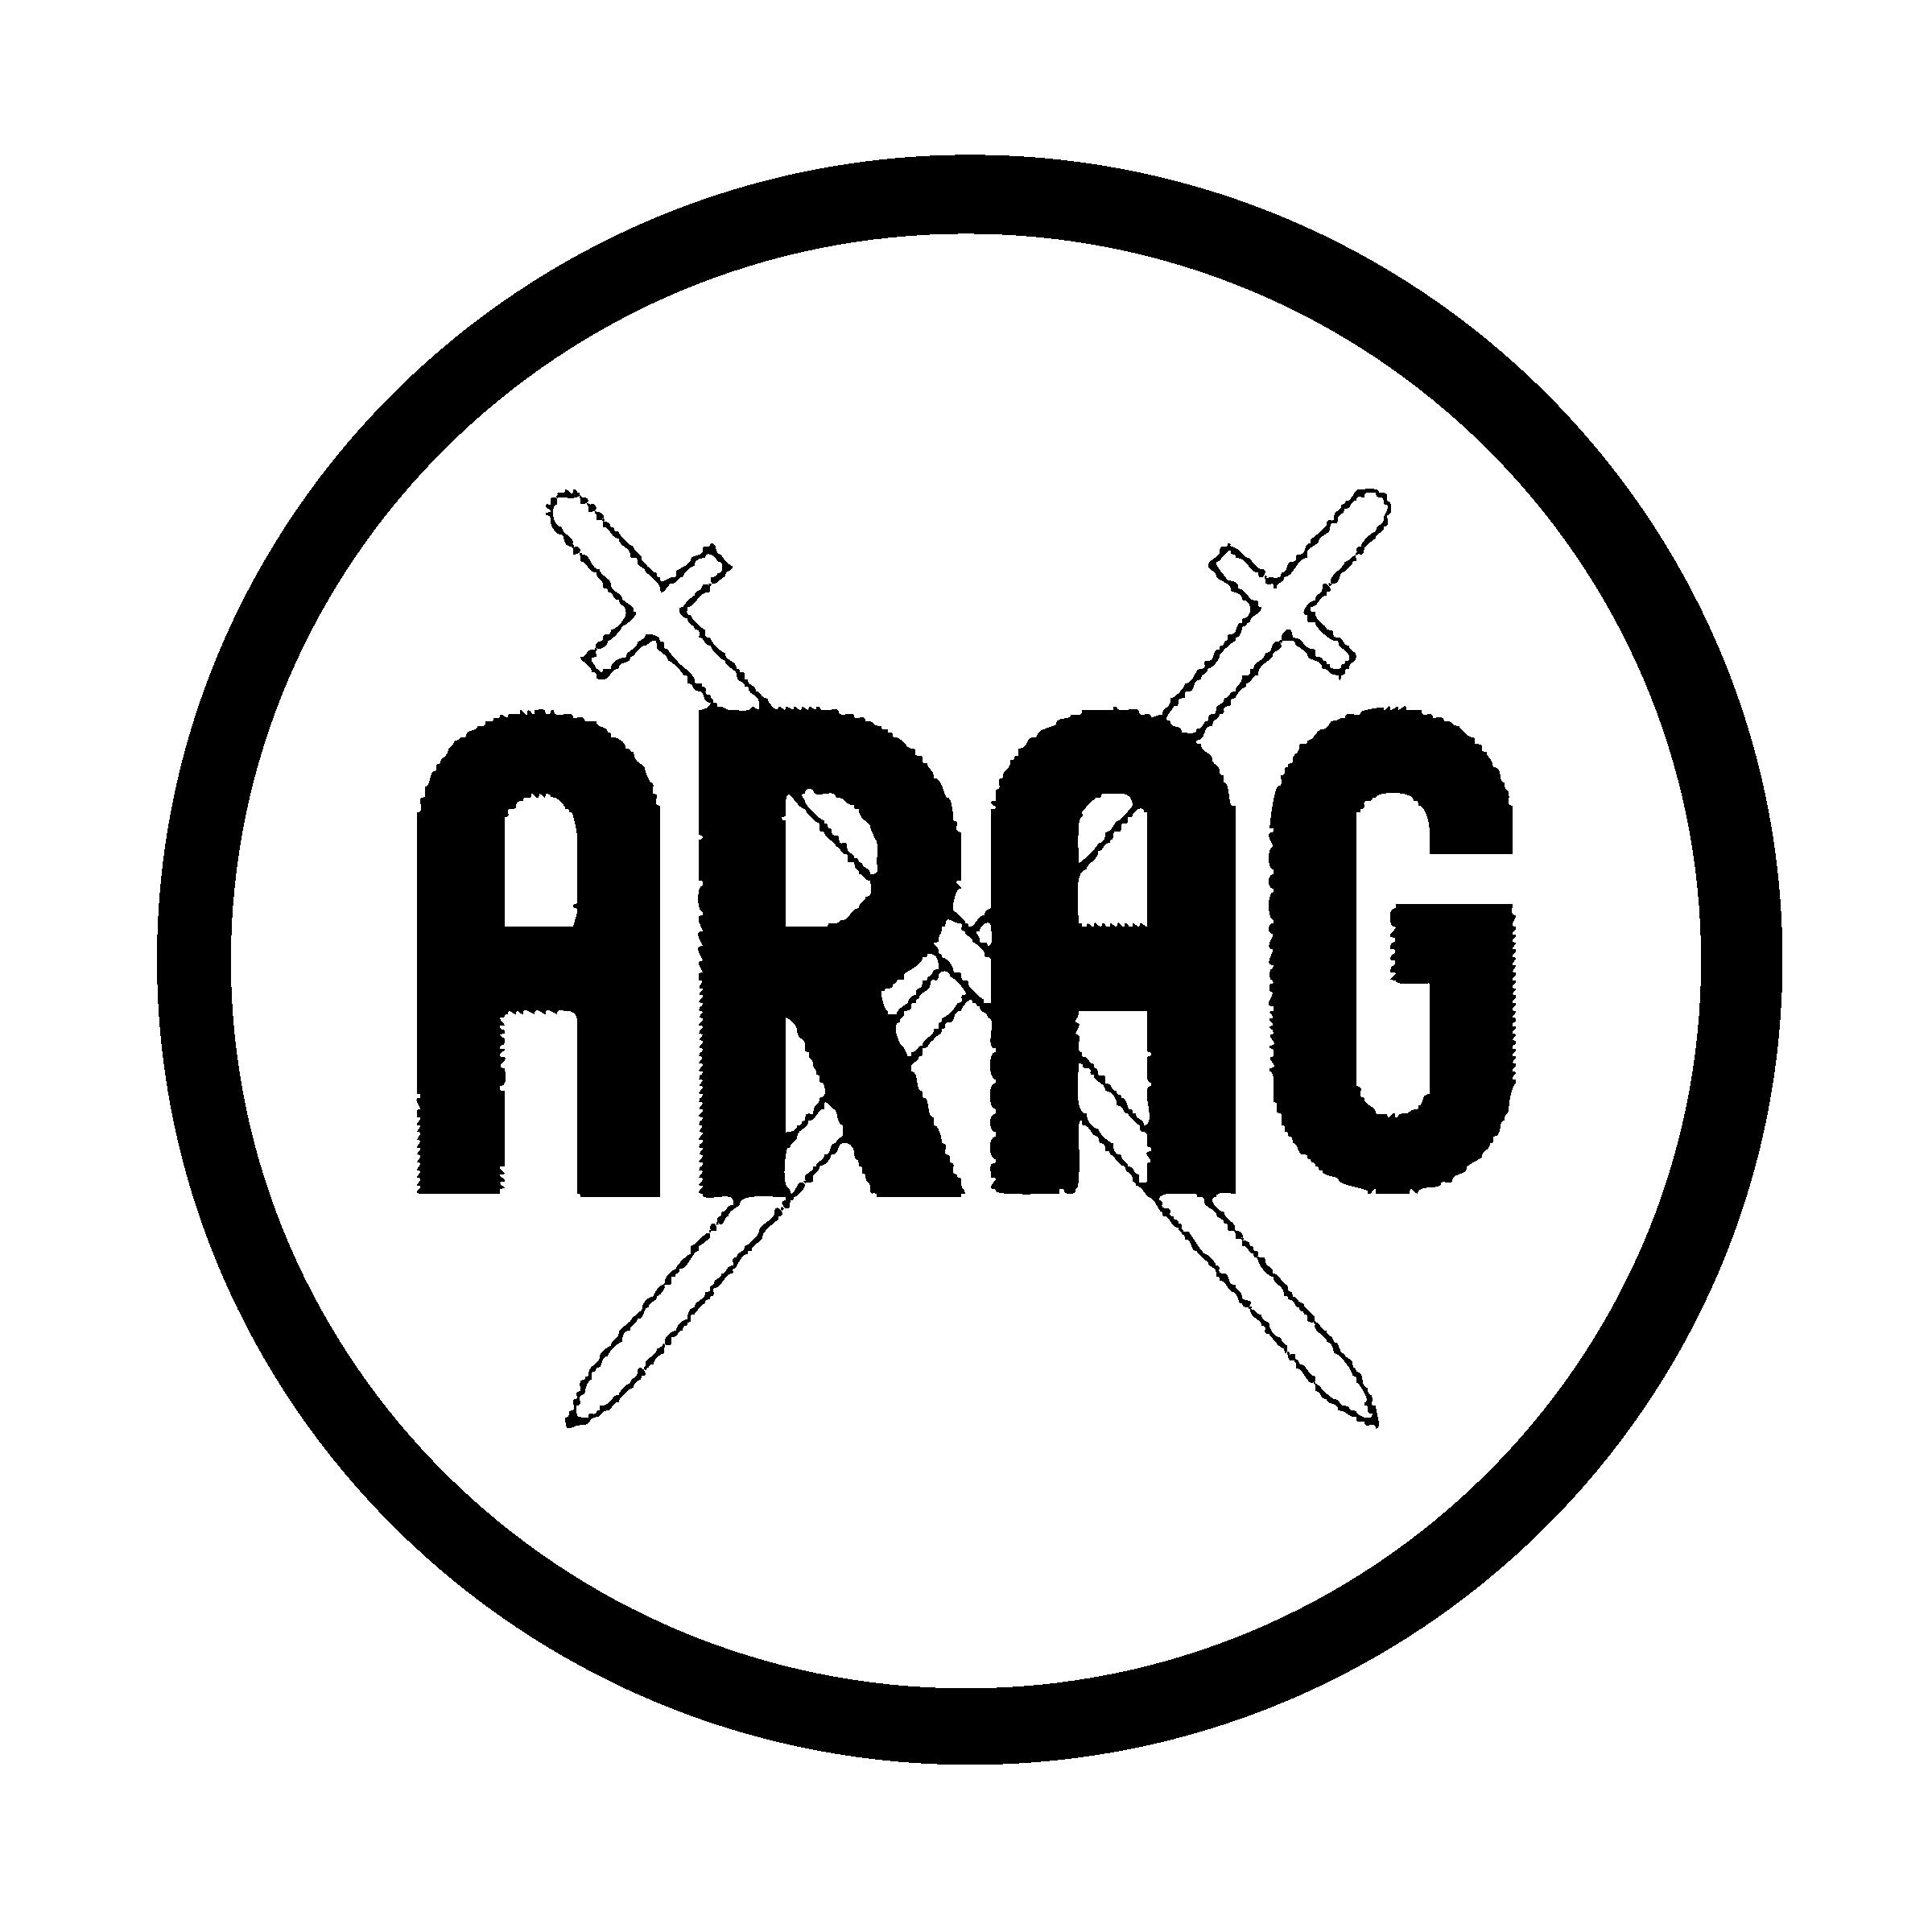 Arag logo clipart svg royalty free download ARAG 01 Logo PNG Transparent & SVG Vector - Freebie Supply svg royalty free download